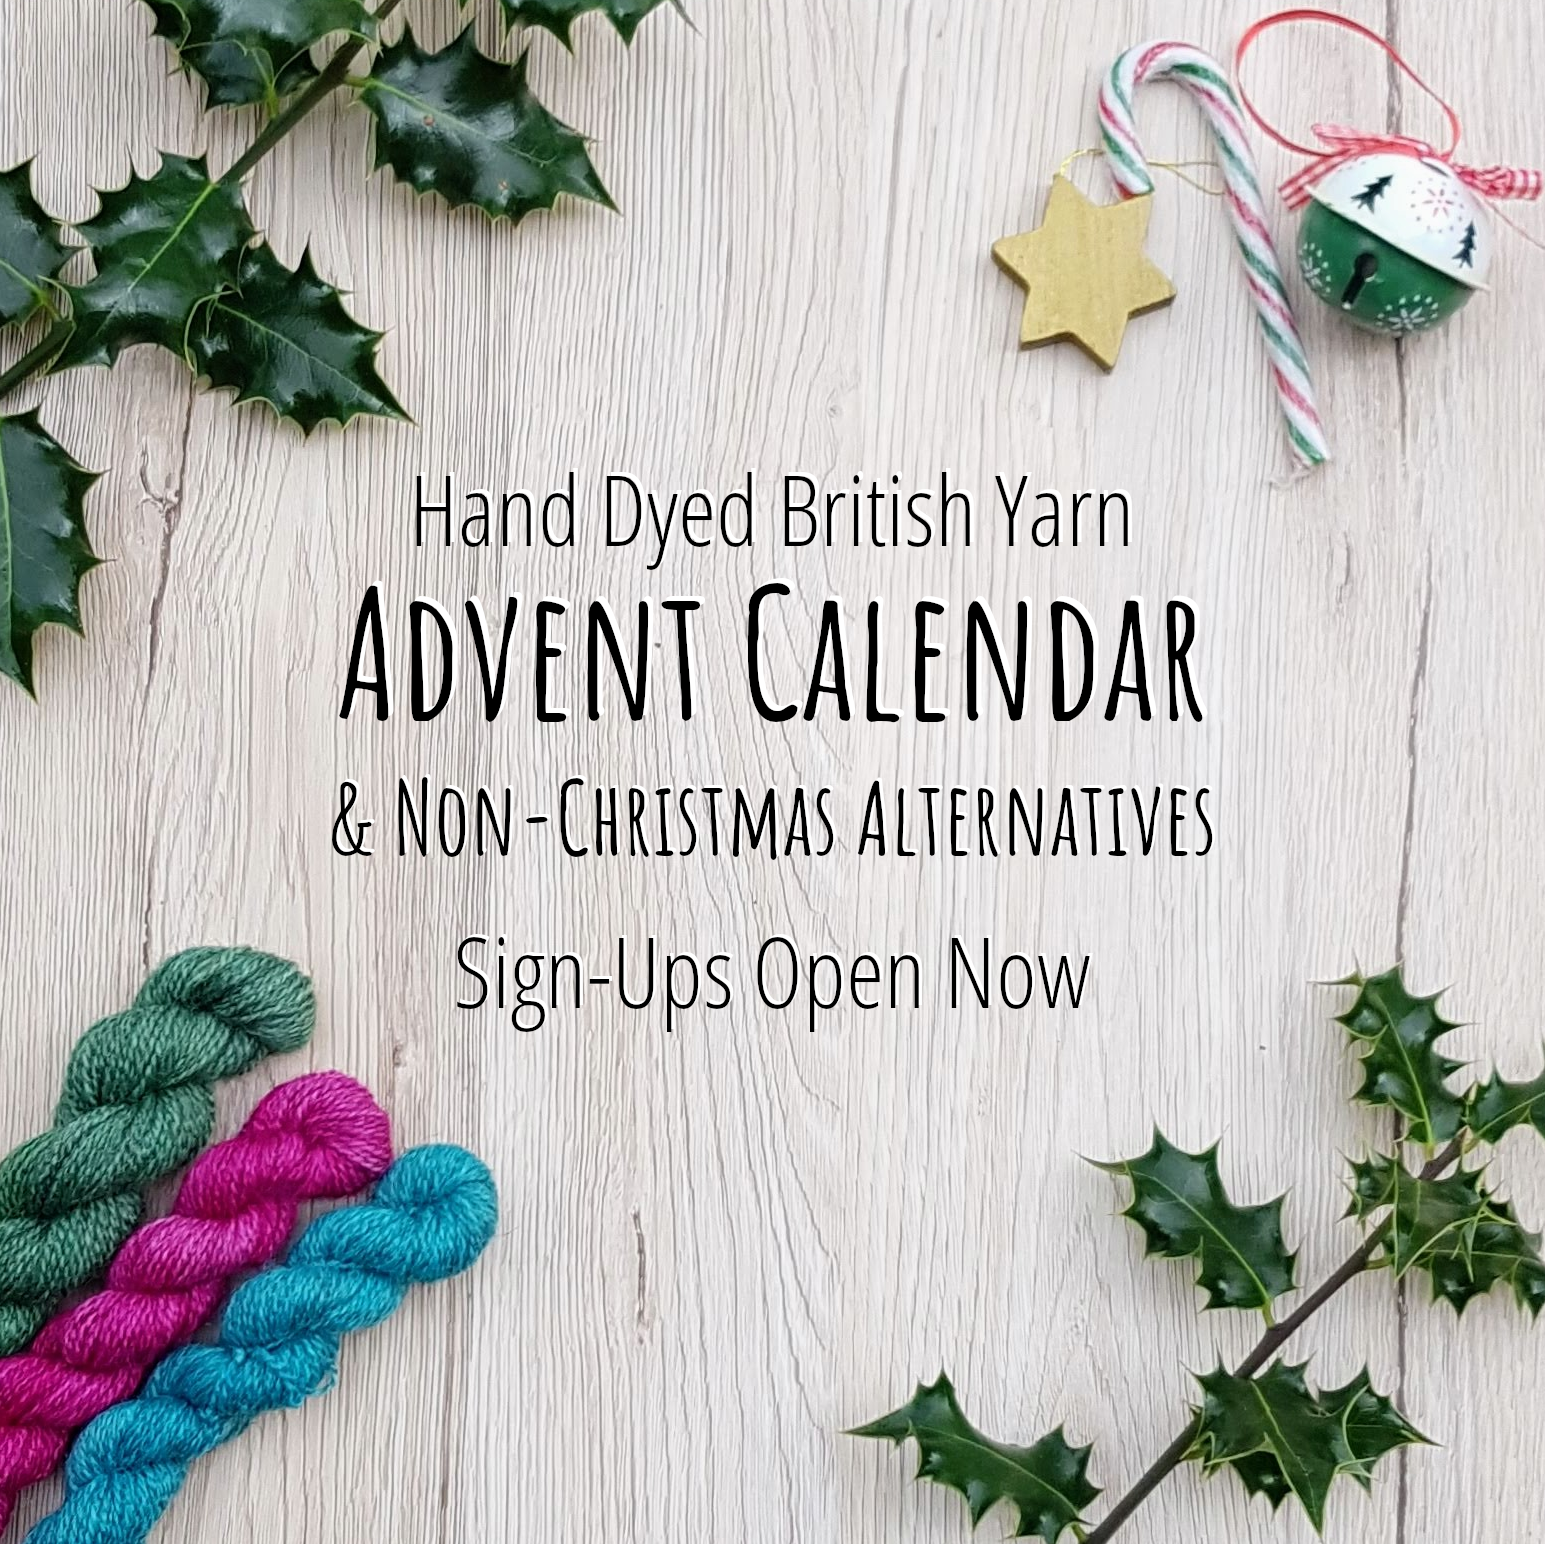 Page Title: Hand Dyed British Yarn Advent Calendar & Non-Christmas Alternative